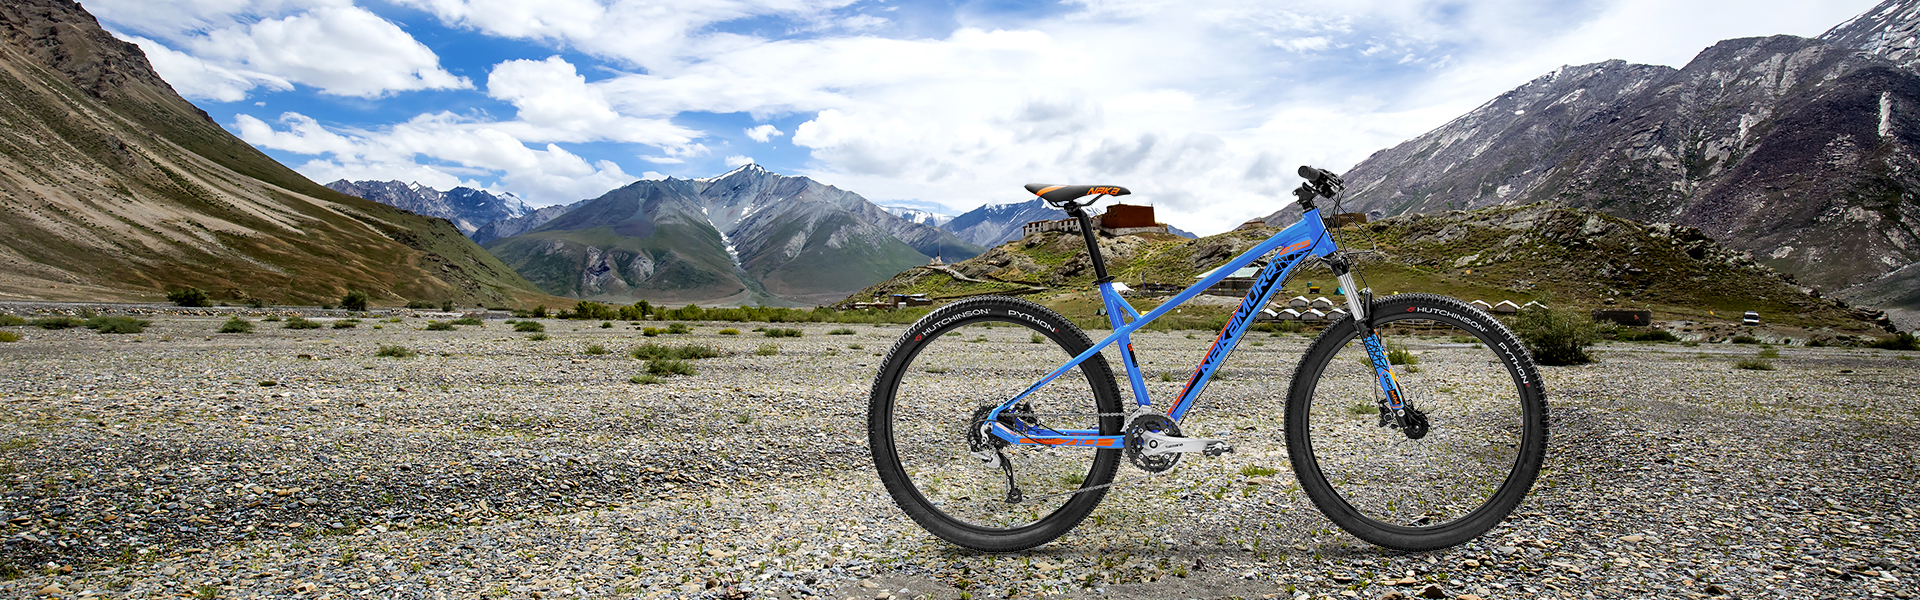 Vtt Summit 710